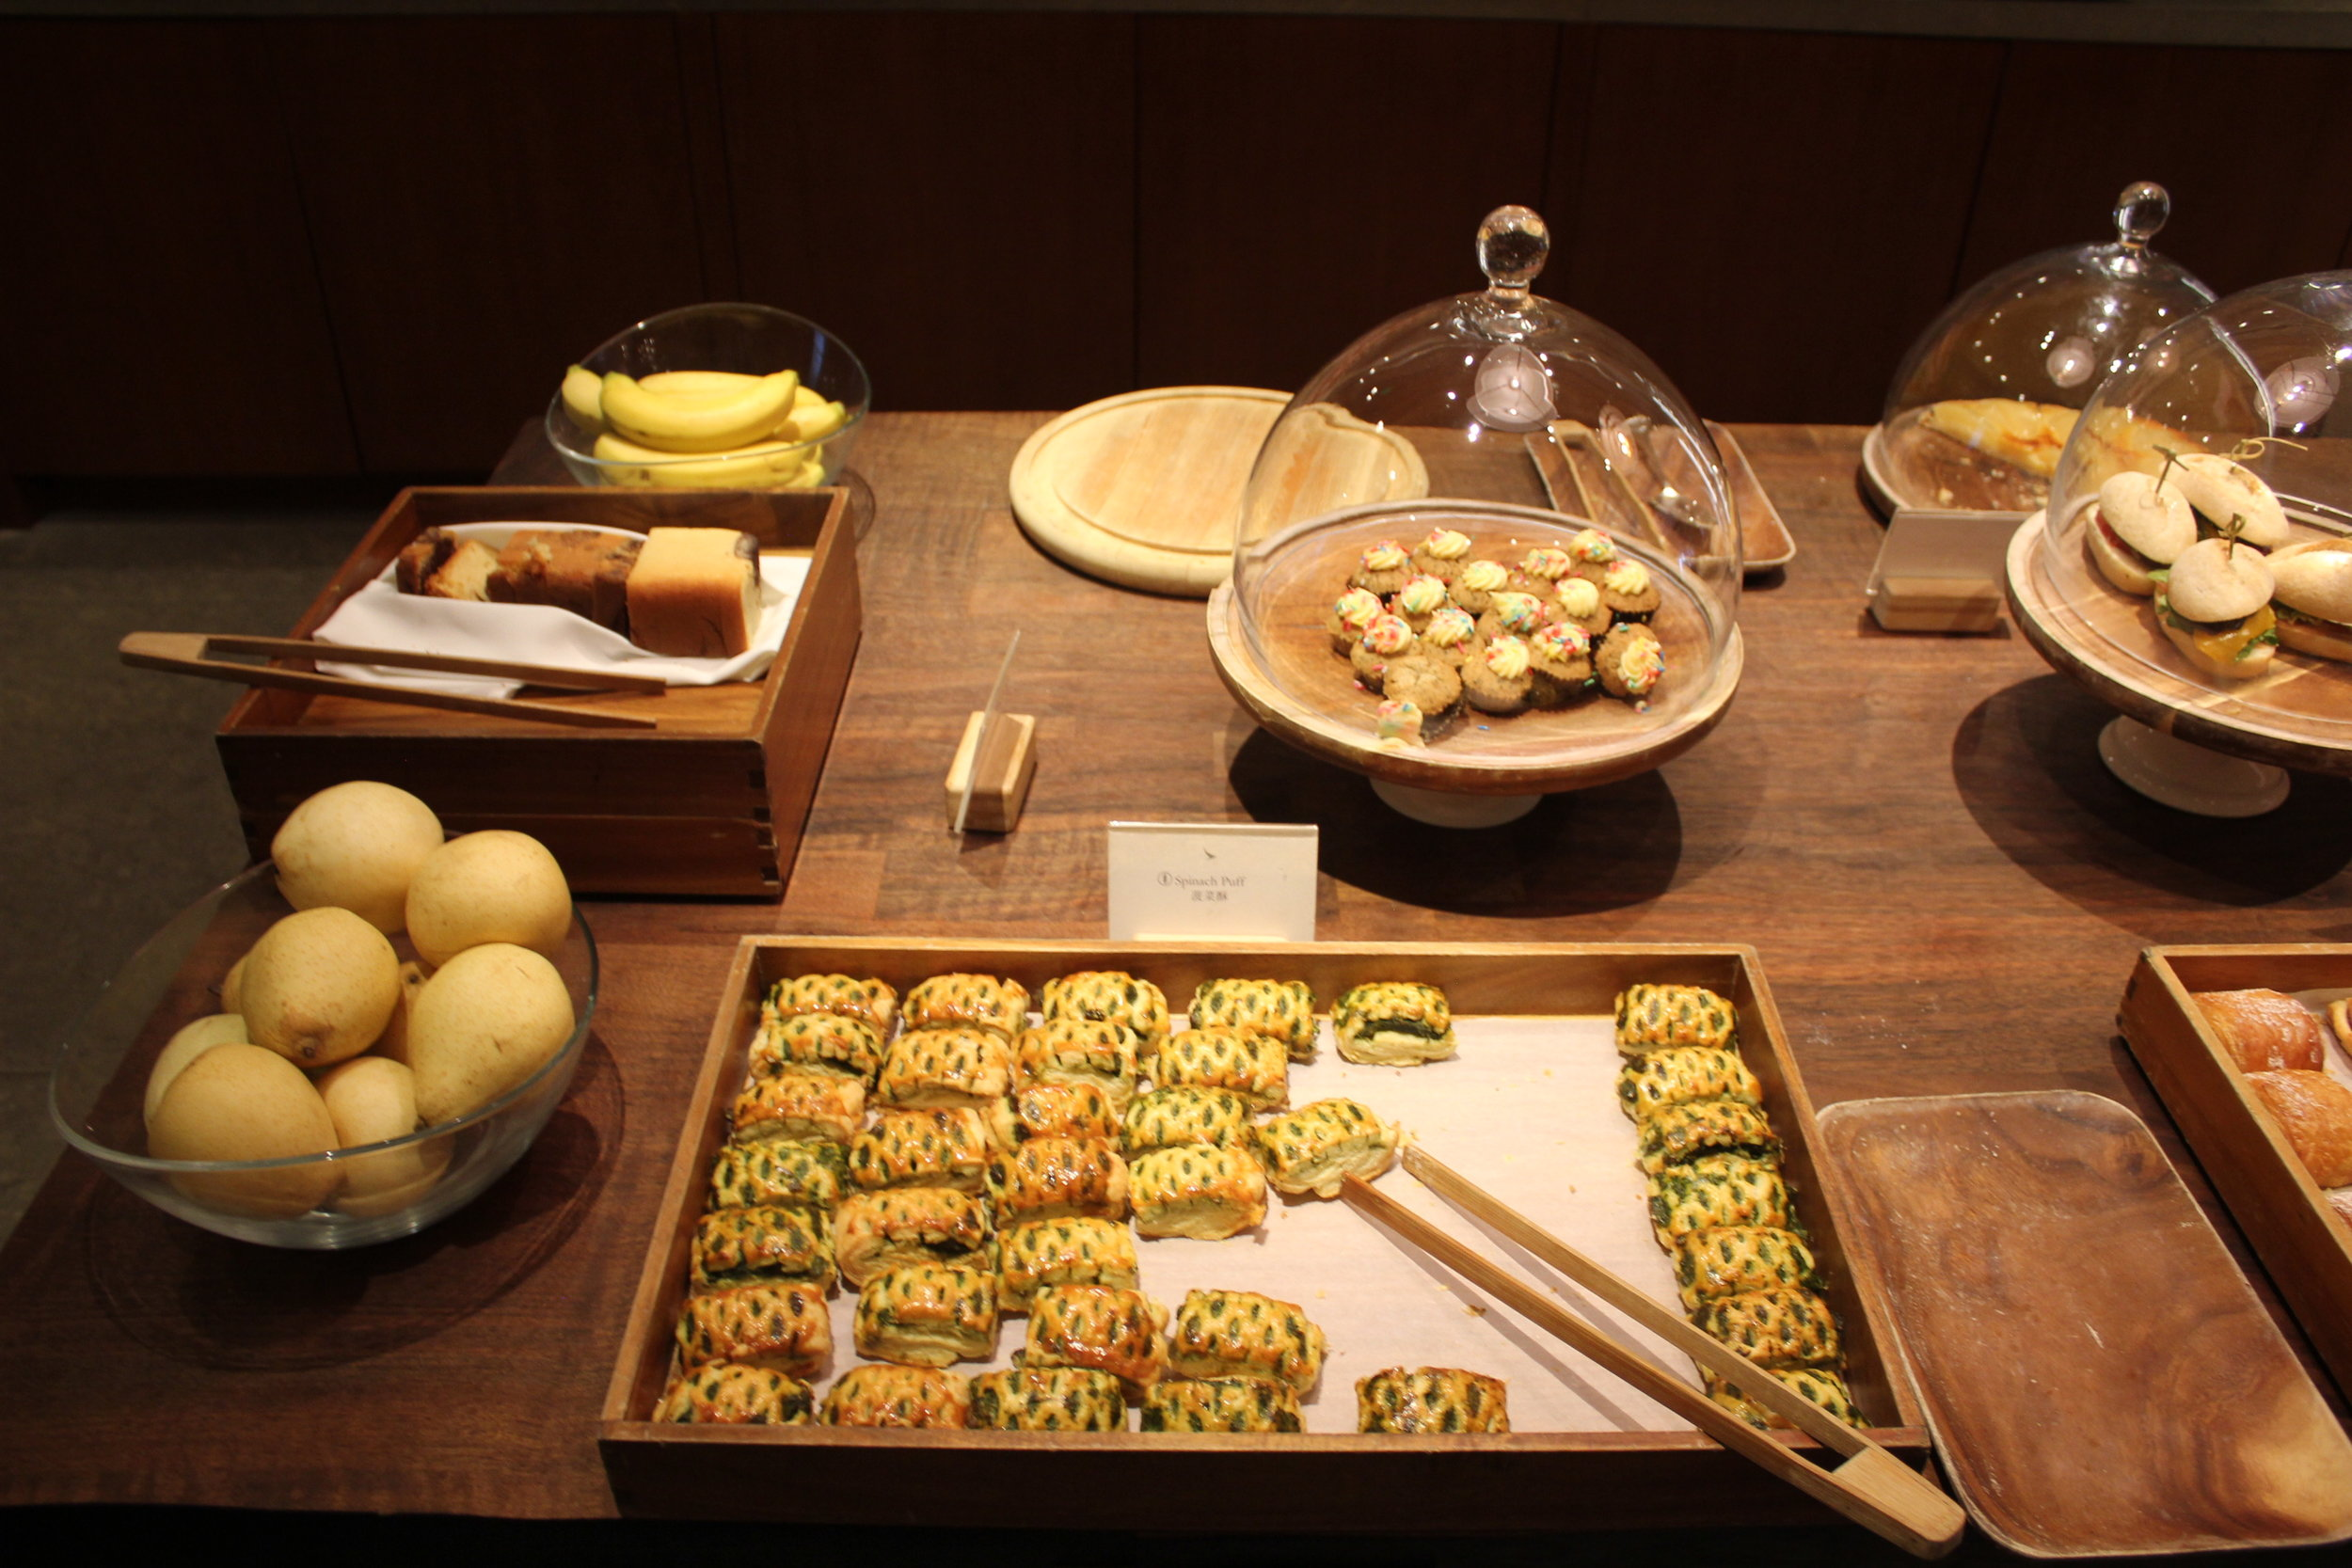 The-Pier-First-Class-Lounge-by-Cathay-Pacific-37.JPG